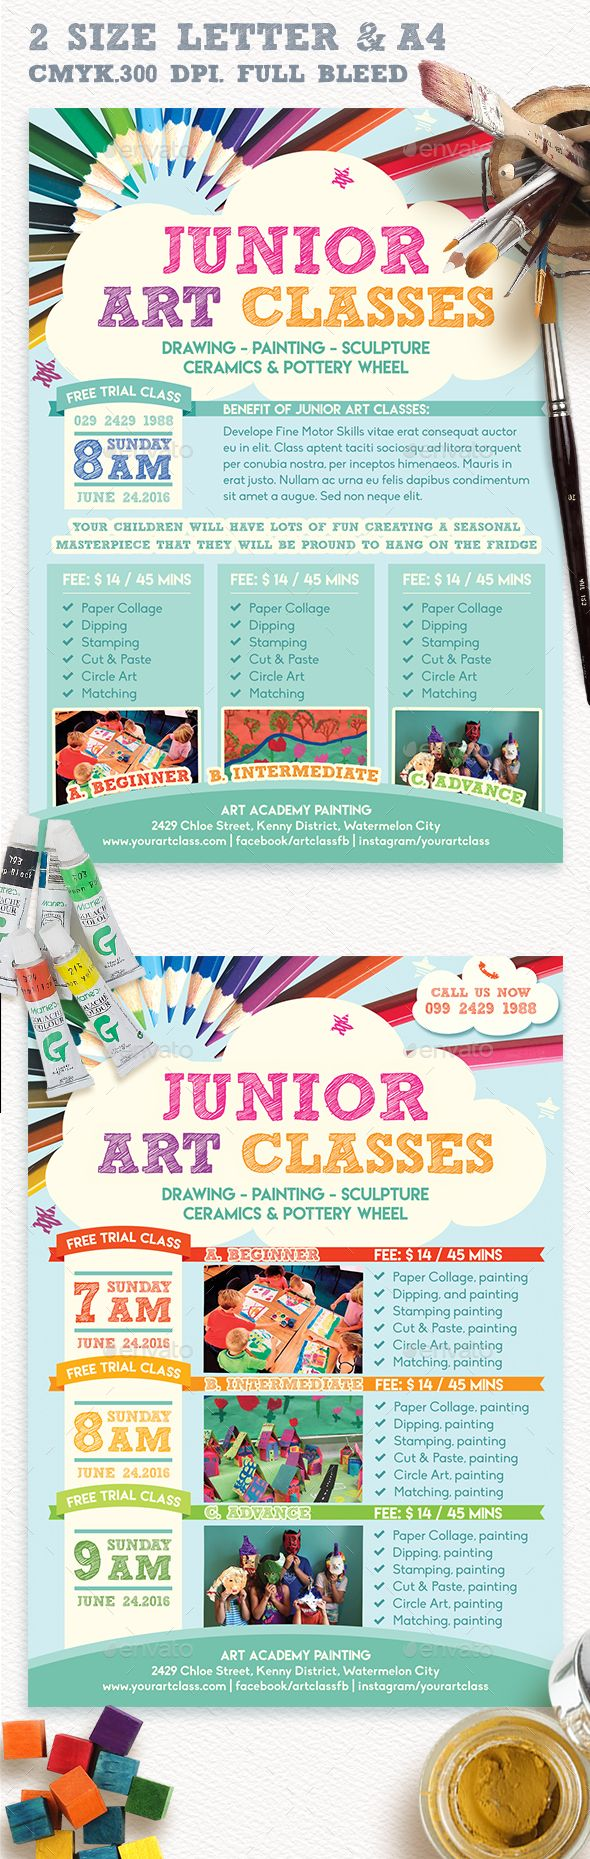 junior art trial class flyer template flyer template junior art trial class flyer template psd template only available here ➝